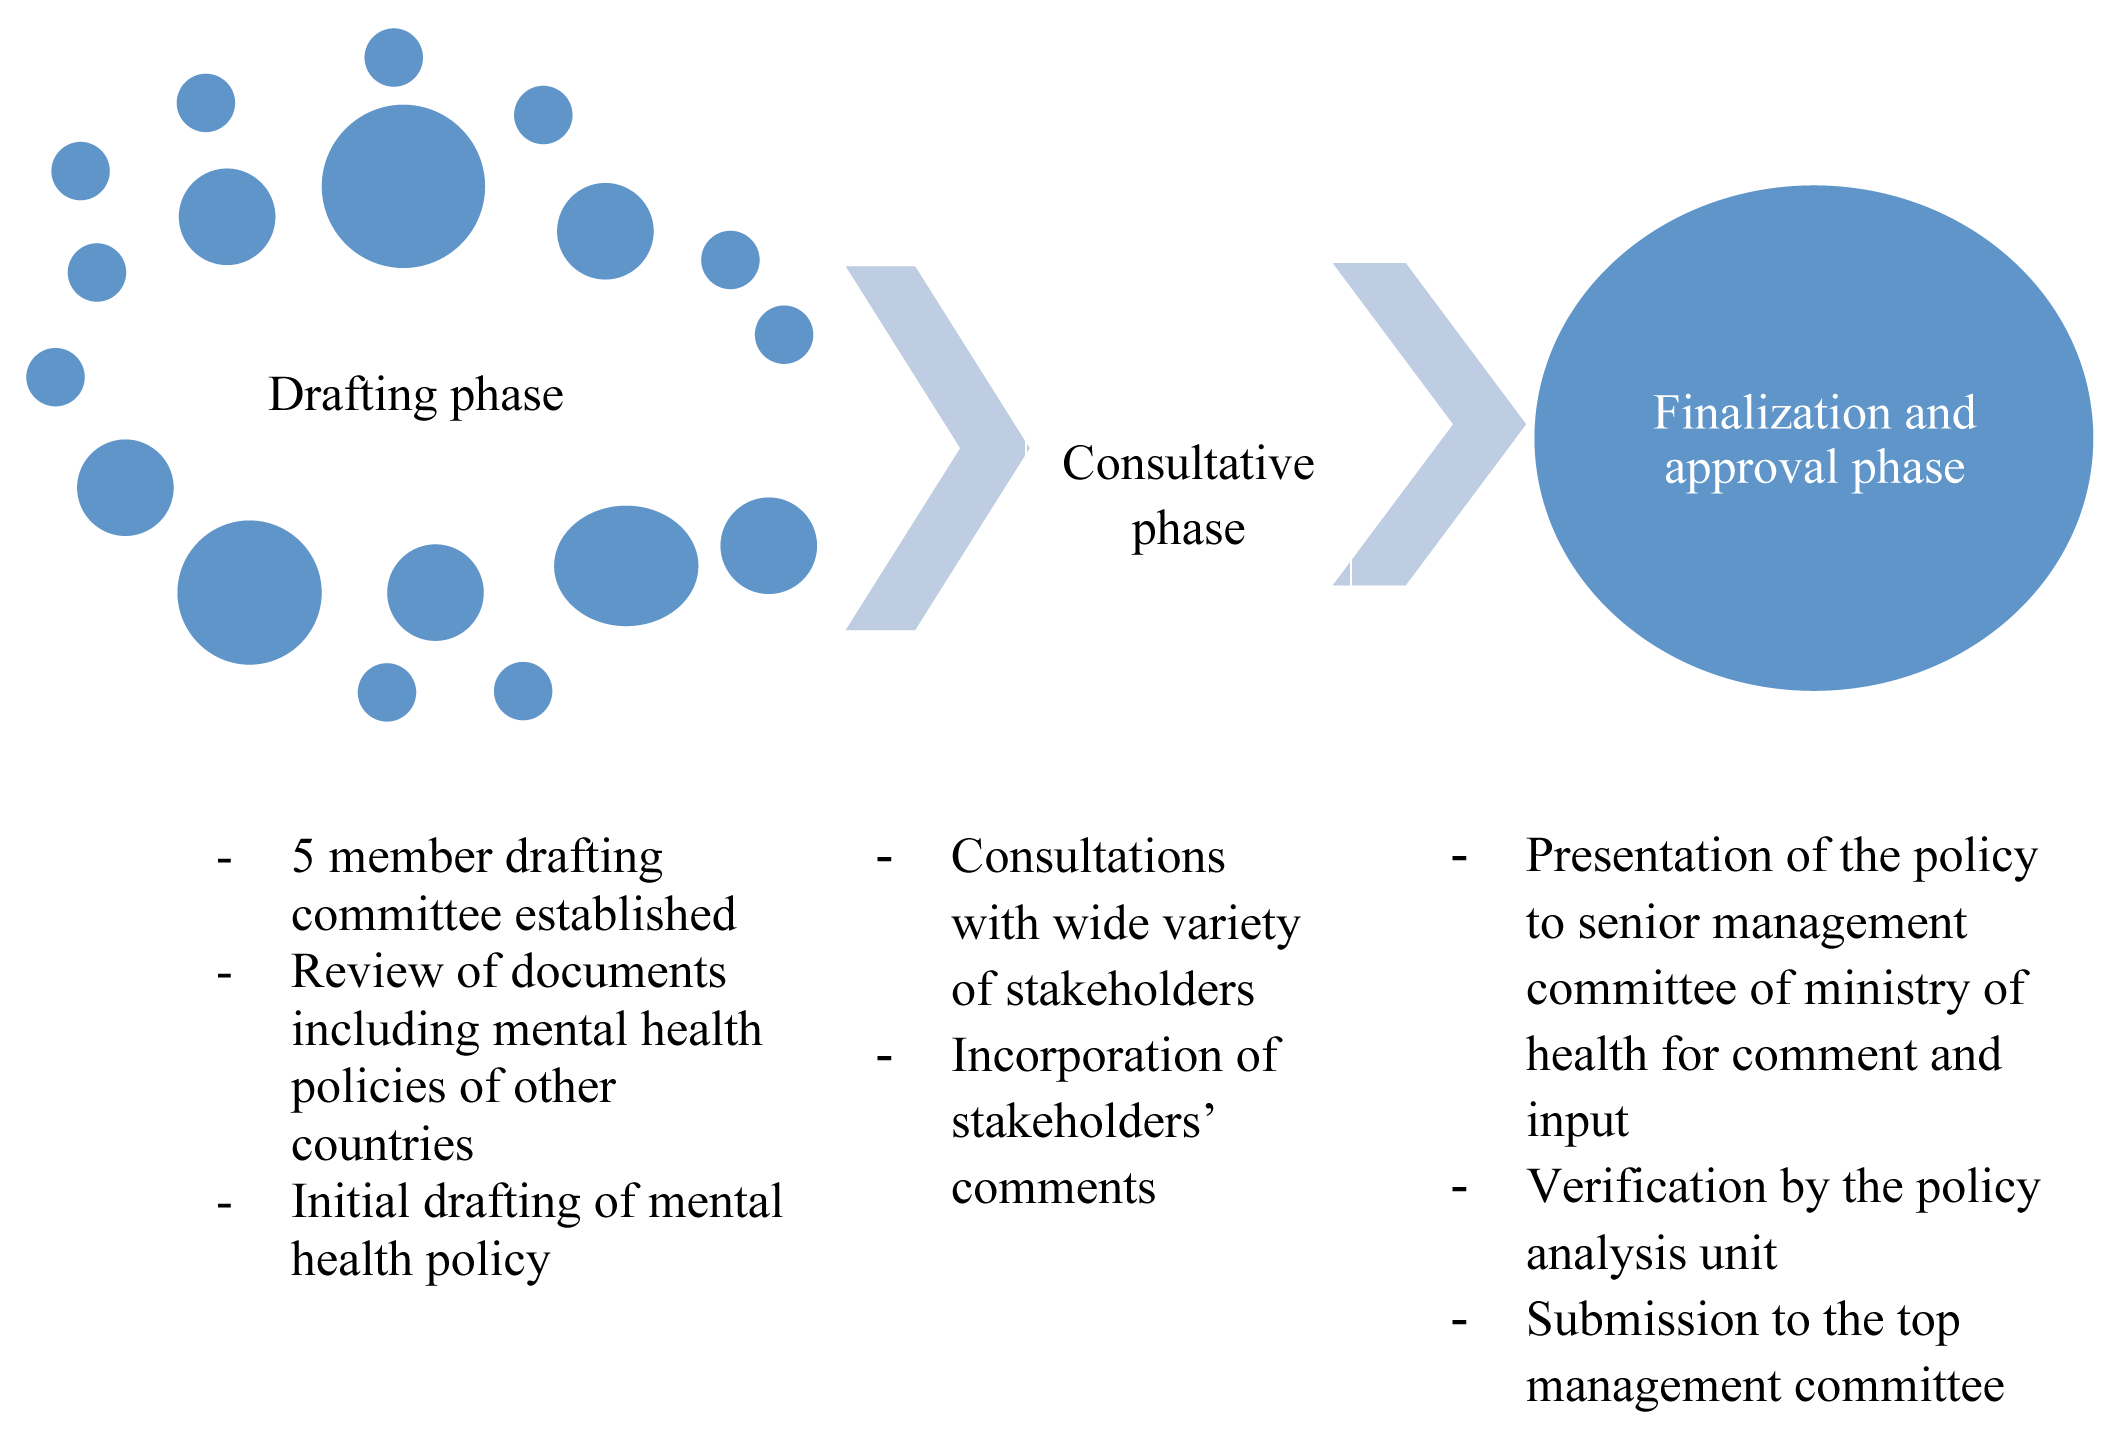 Process of developing a new mental health policy for Uganda.